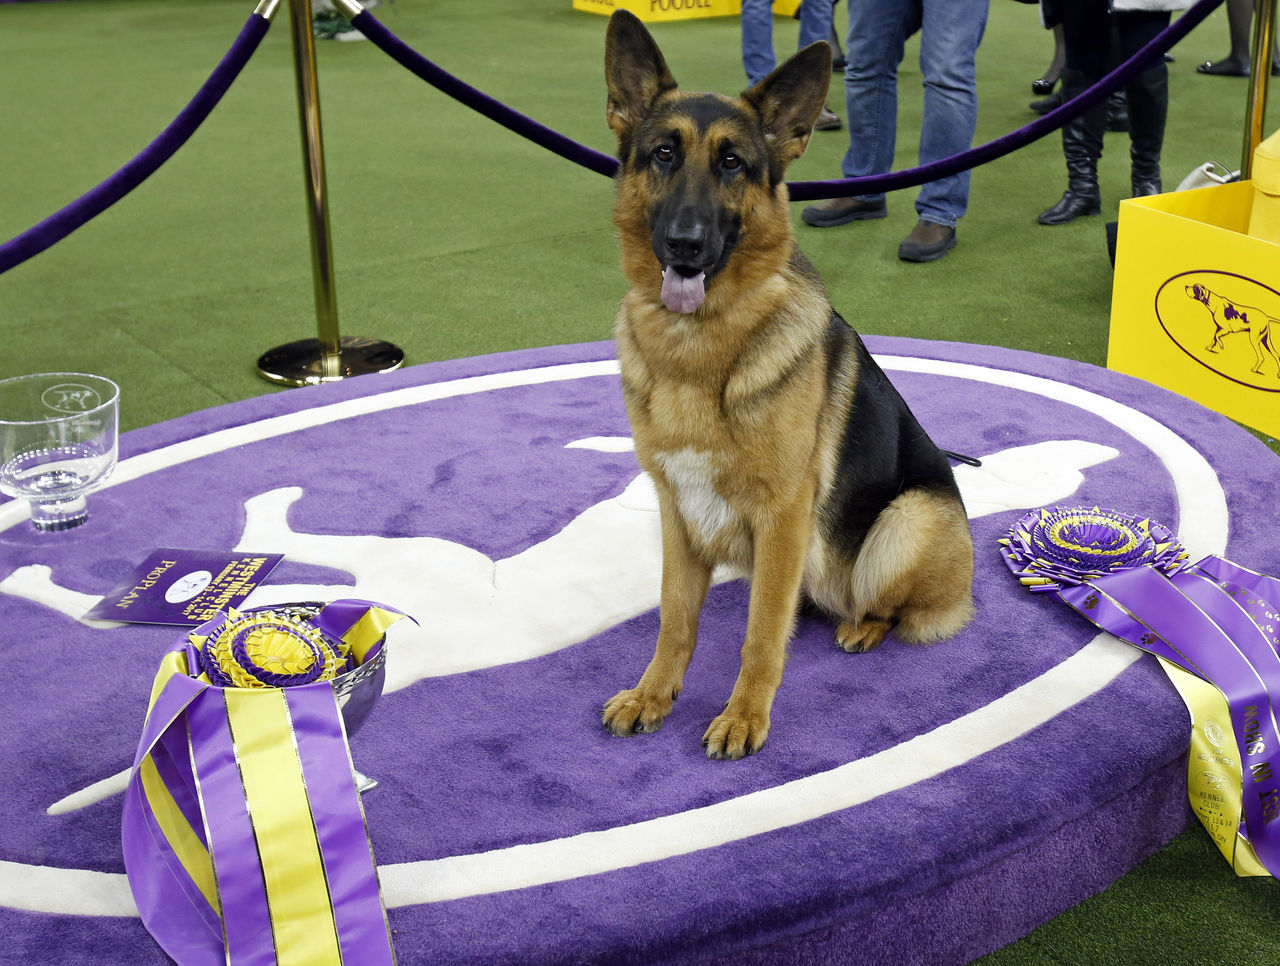 Cropped 2017 02 15t053337z 1552428438 nocid rtrmadp 3 news westminster kennel club dog show